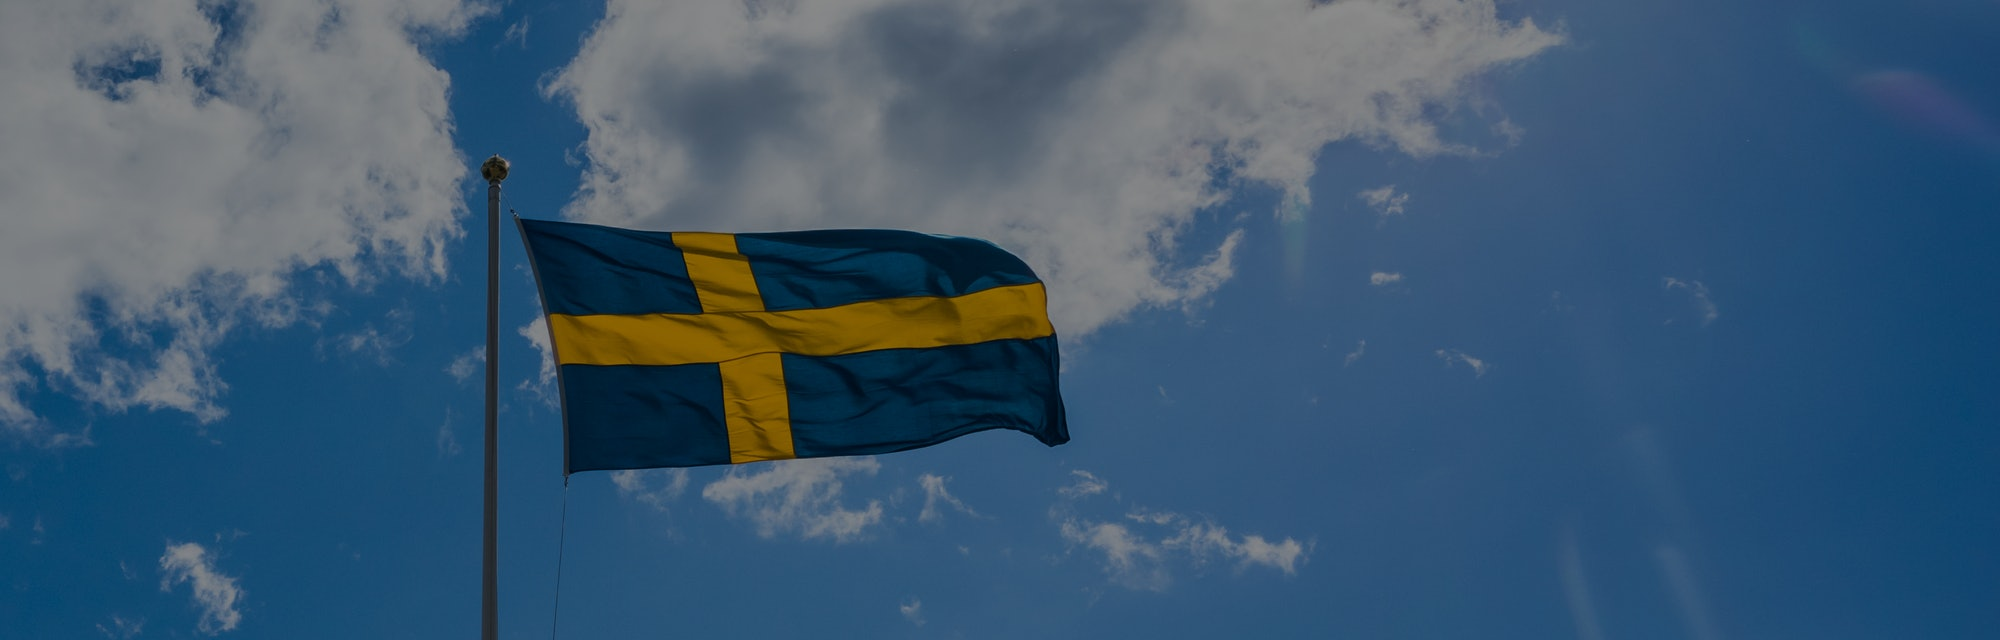 Swedish Flag on blue sky white clouds. Swedish Flag Day concept in Sun rays . Sveriges nationaldag. National Day of Sweden.